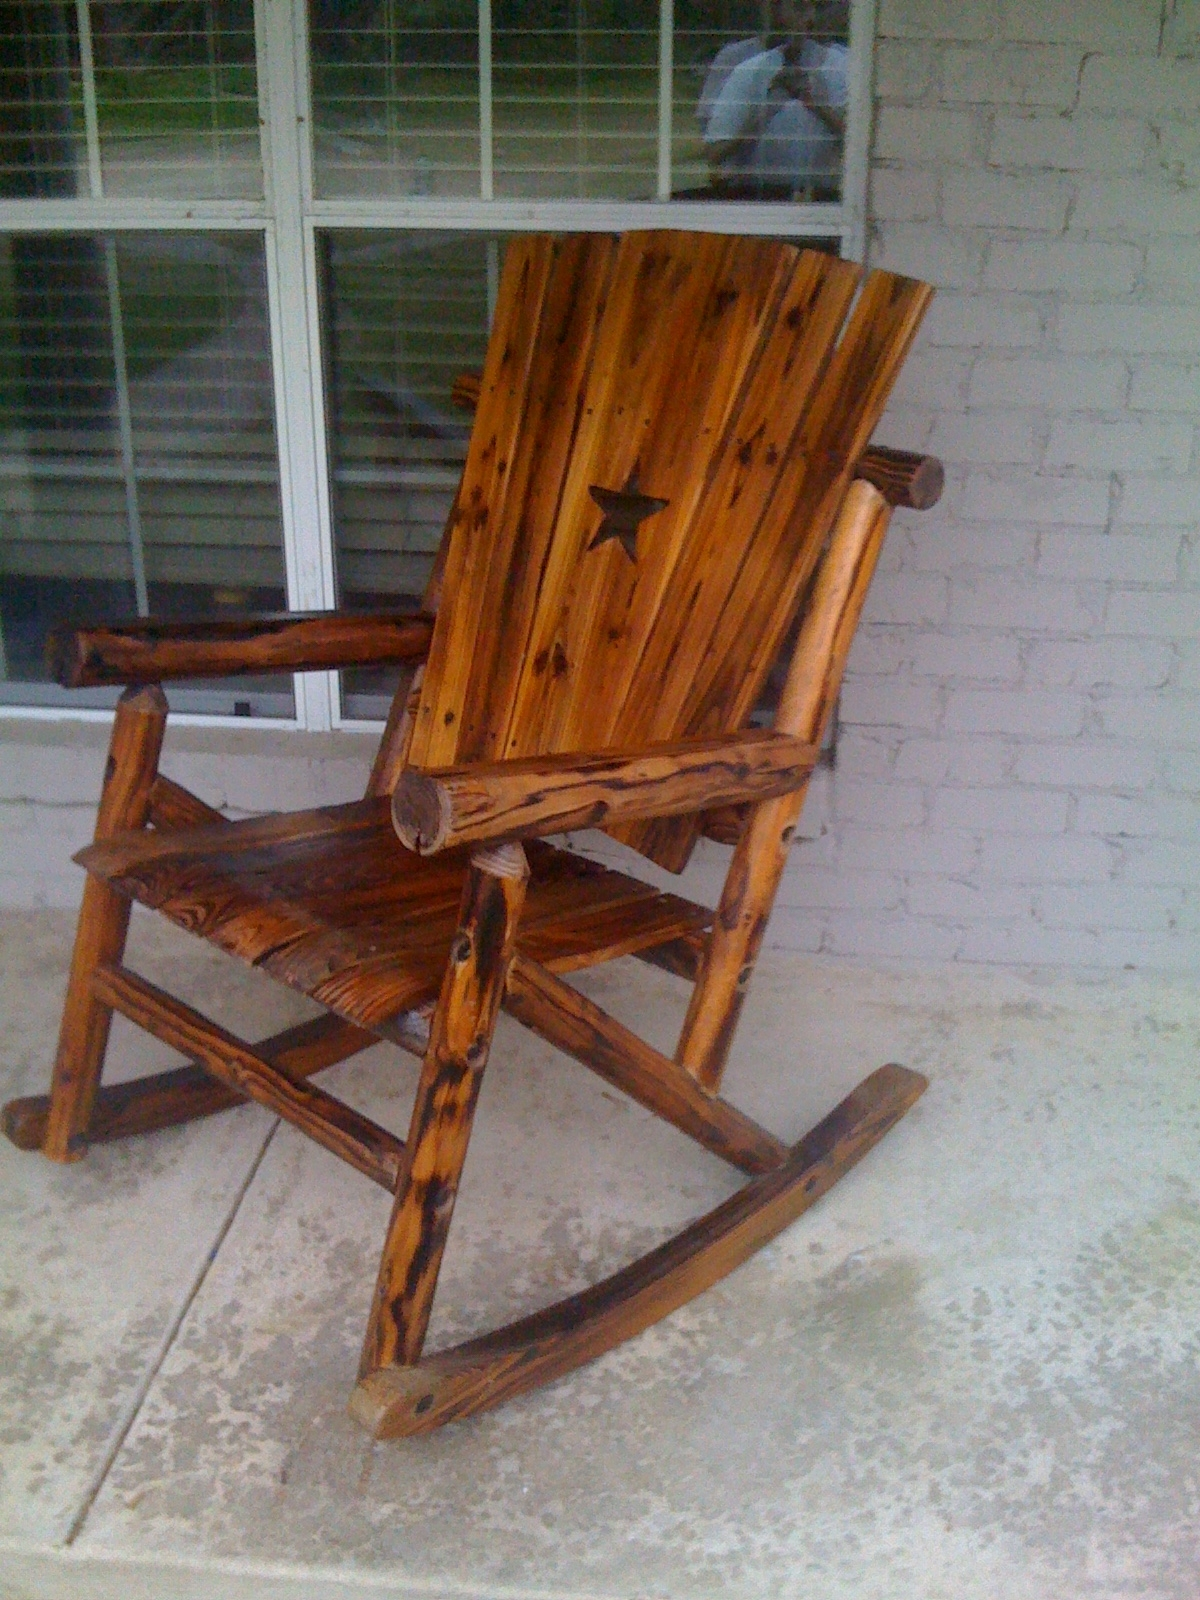 Creative Design For Retro Rocking Chair Ideas #8395 Inside Retro Rocking Chairs (View 7 of 15)